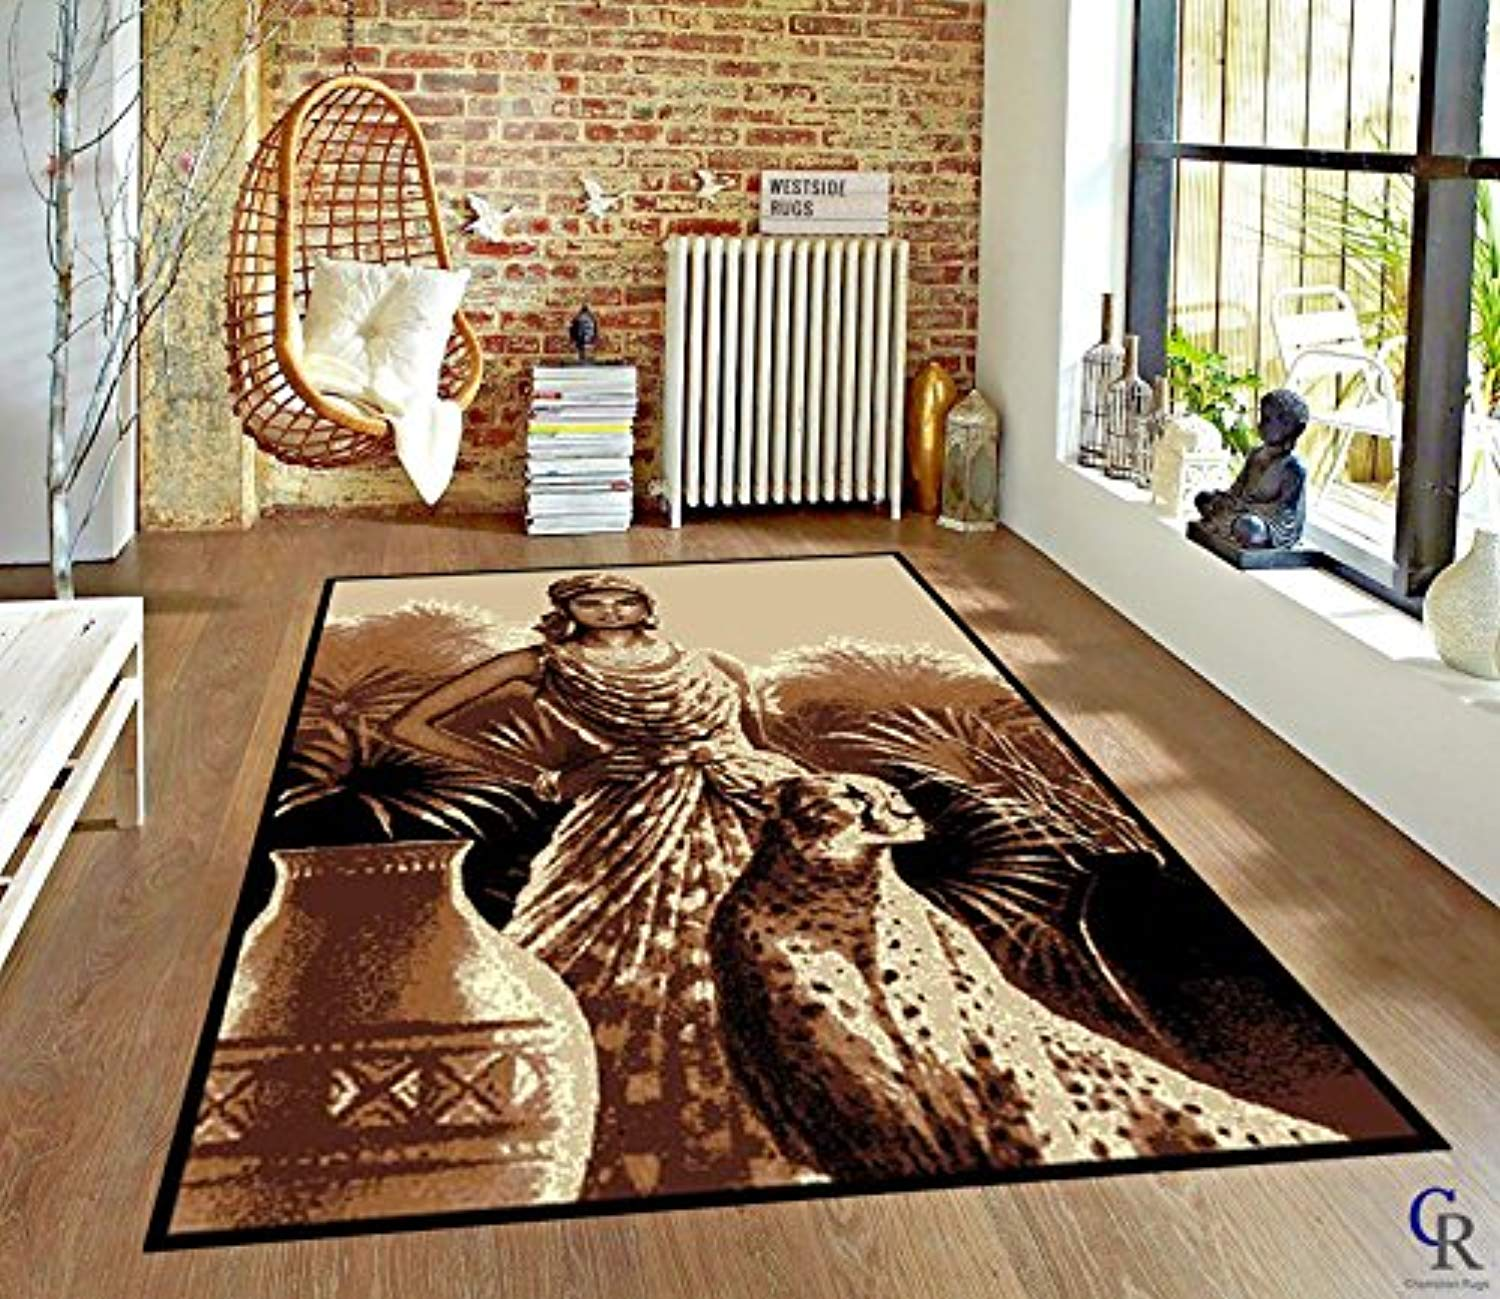 "Lady and Leopard African Theme Area Rug (5' 3"" X 7' 5"")"